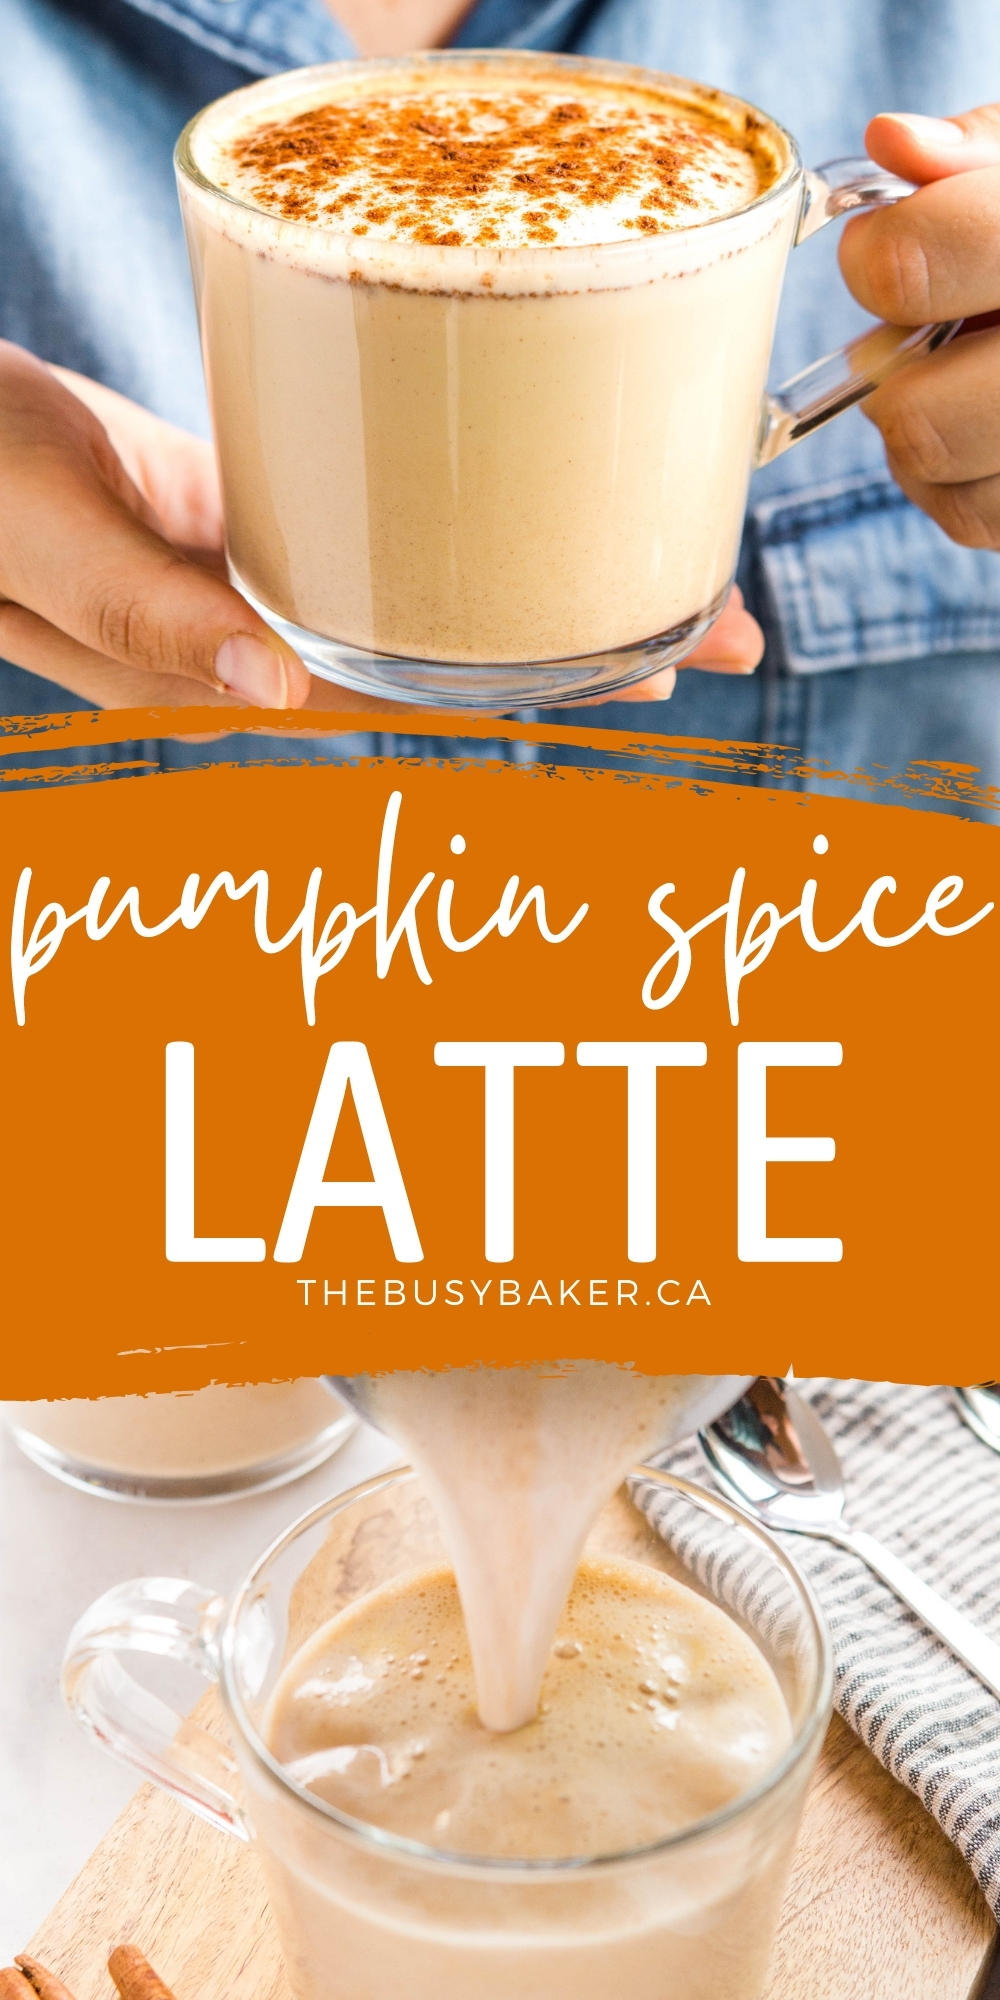 This Easy Pumpkin Spice Latte is the perfect classic fall coffee drink that's easy to make with simple espresso, spiced syrup to sweeten, and pumpkin spice flavoured foamed milk! Easy to make dairy-free and sugar-free! Recipe from thebusybaker.ca! #pumpkinspice #latte #psl #starbucks #copycat #pumpkinspicelatte #coffee #espresso #homemade #copycat #recipe via @busybakerblog